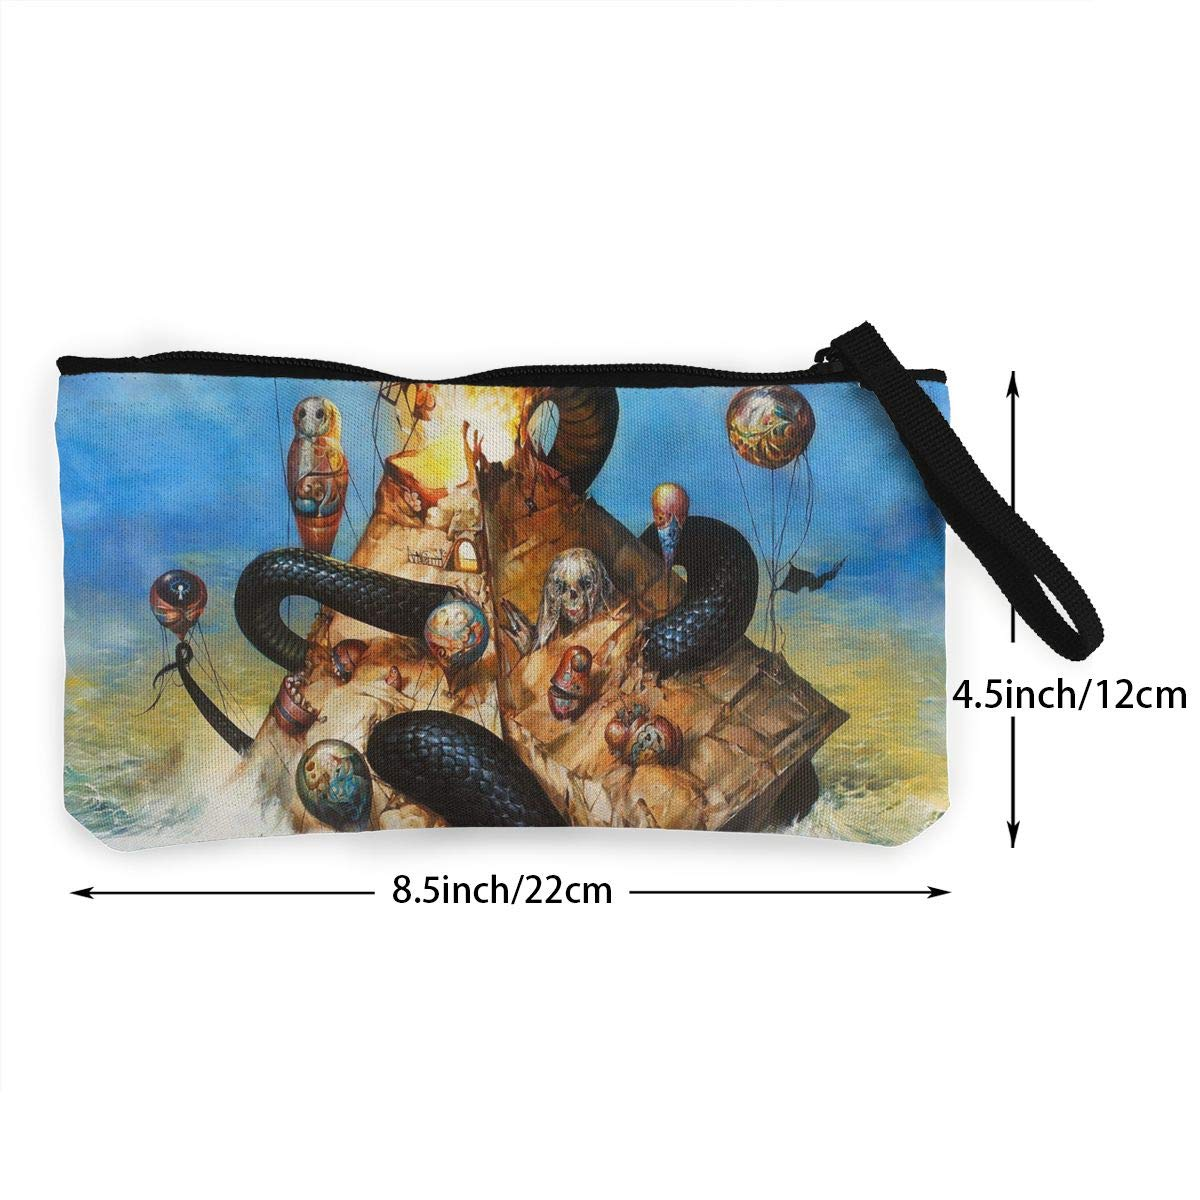 Thomas C Gaona Circa Survive Women and Girl Classic Coin Purse Zipper Pouch Wallet Canvas Clutch Wristlet Cellphone Bag with Handle for